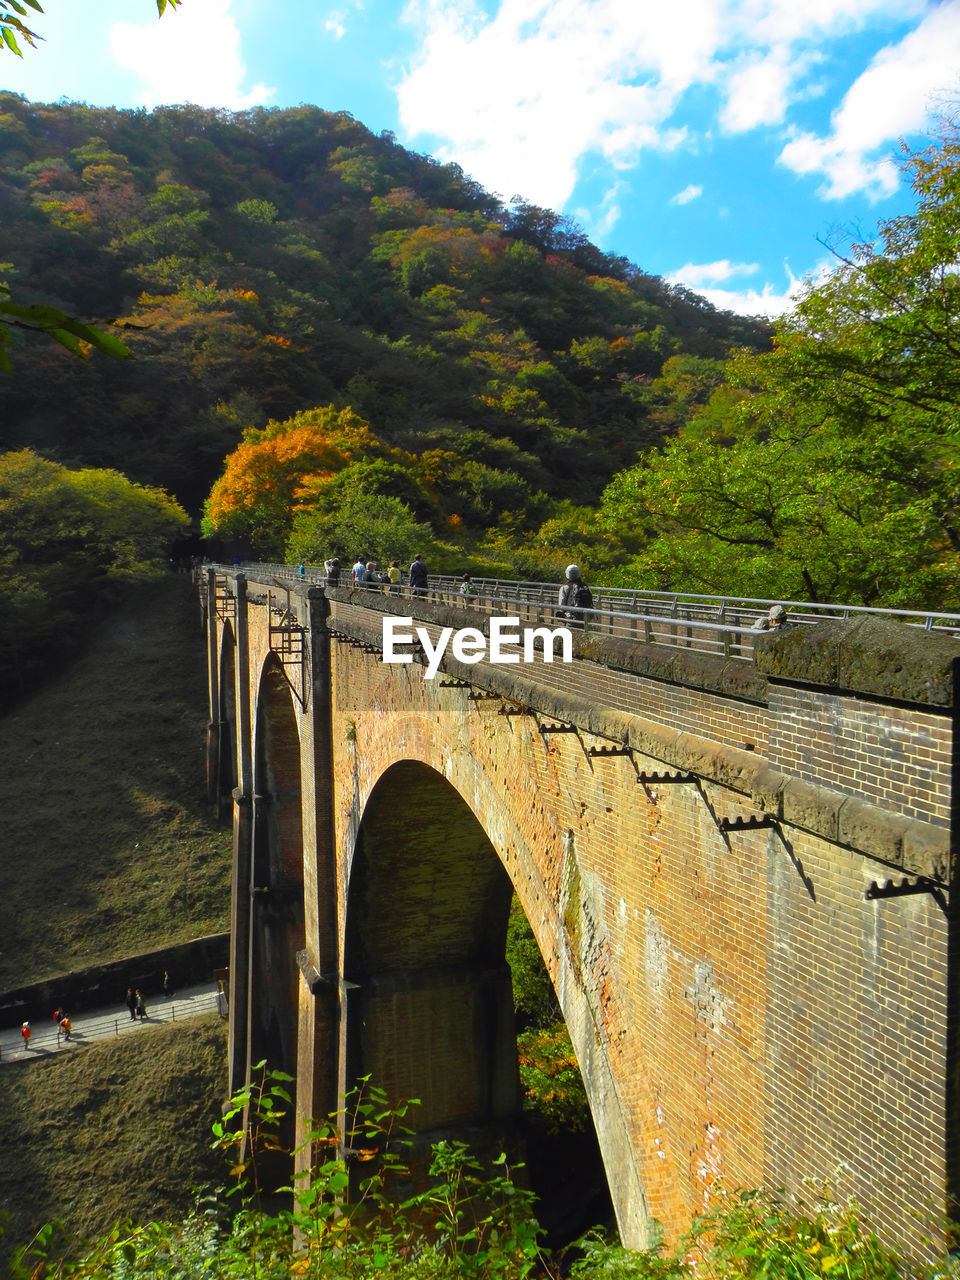 bridge, bridge - man made structure, built structure, architecture, connection, plant, tree, cloud - sky, nature, sky, arch, transportation, day, water, mountain, growth, no people, outdoors, arch bridge, wall, arched